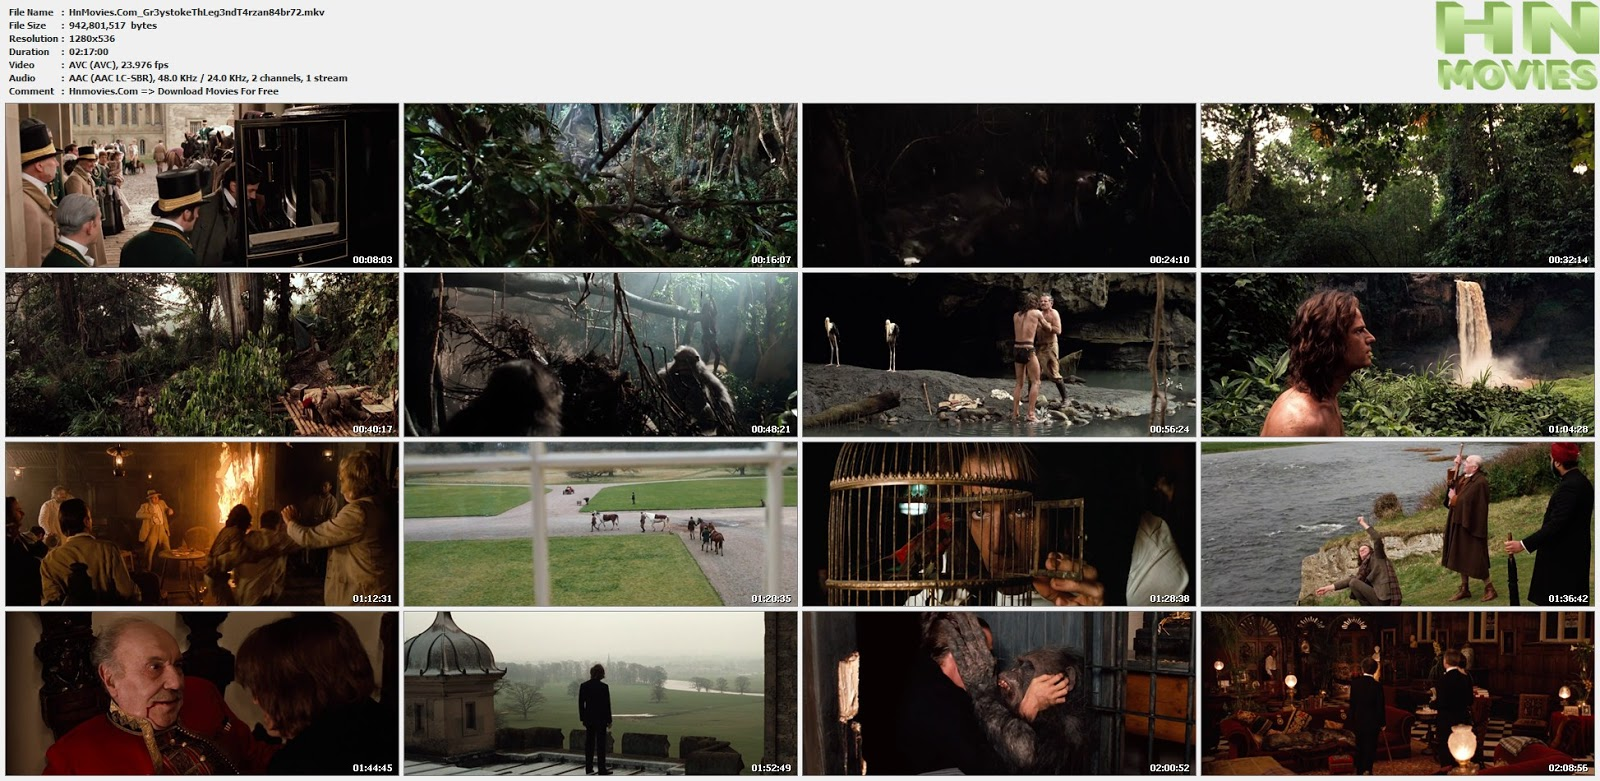 movie screenshot of Greystoke: The Legend of Tarzan, Lord of the Apes fdmovie.com